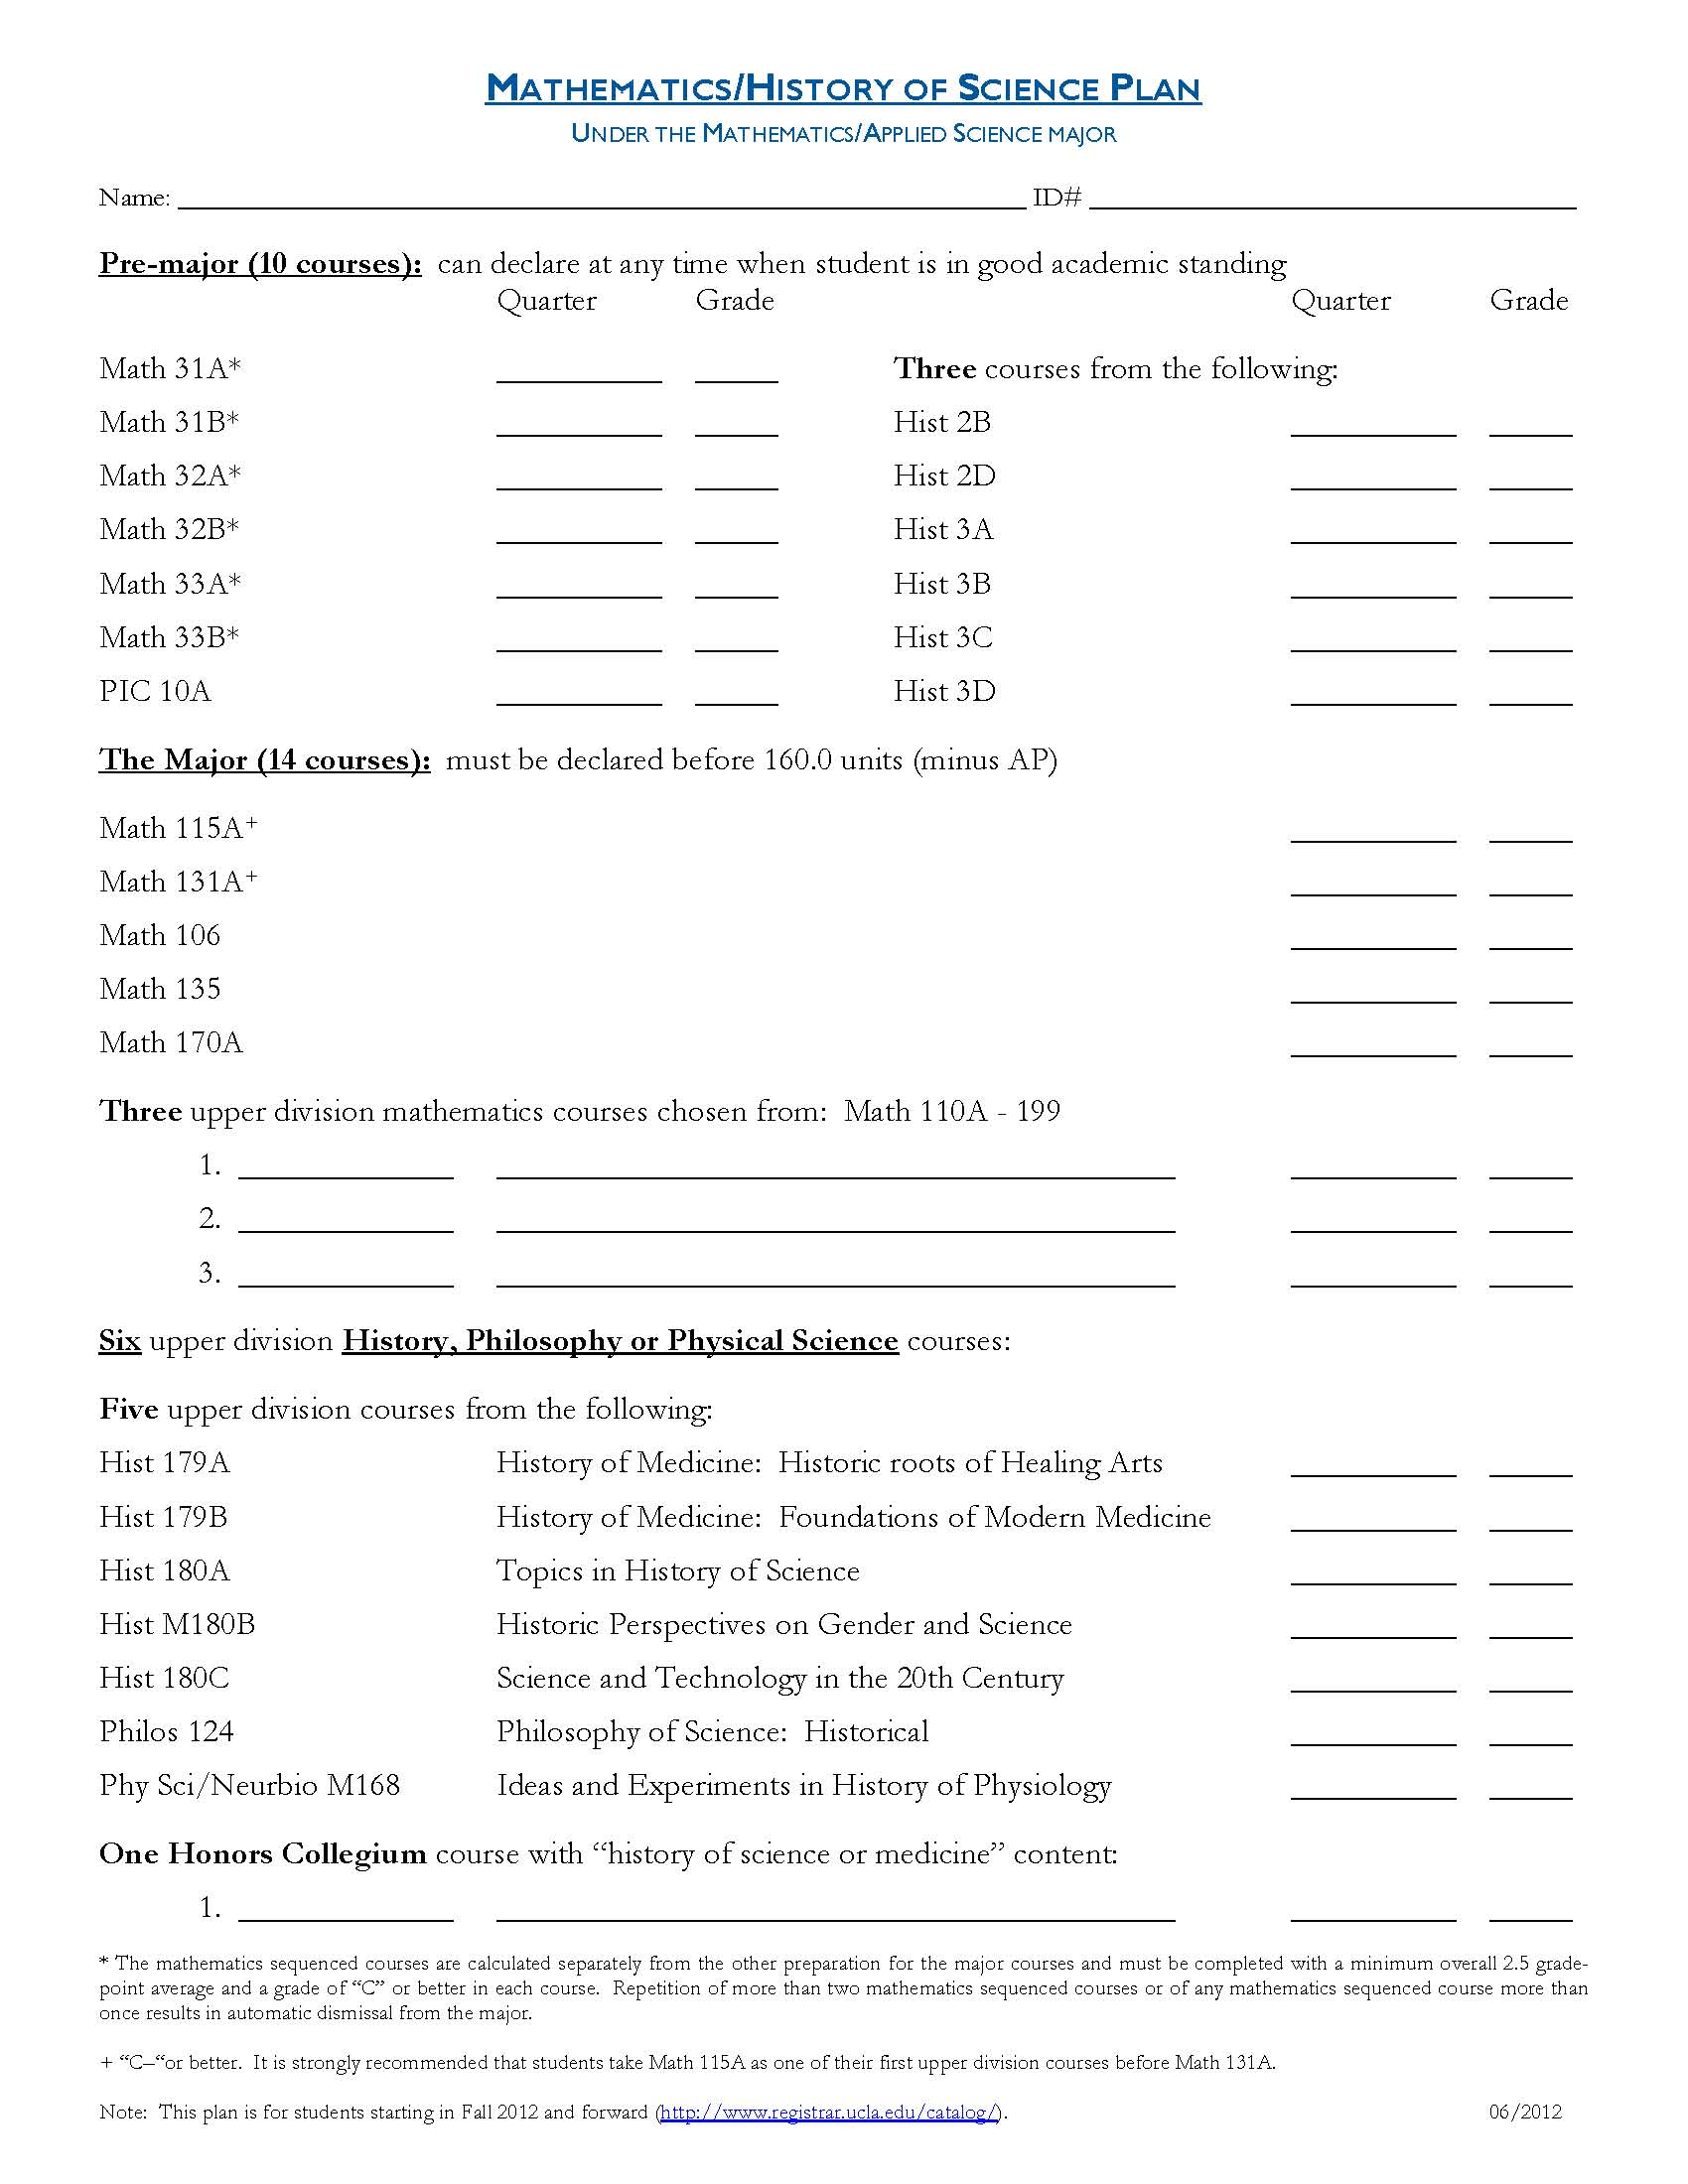 History of Science Plan - Mathematics/Applied Sciences   UCLA ...